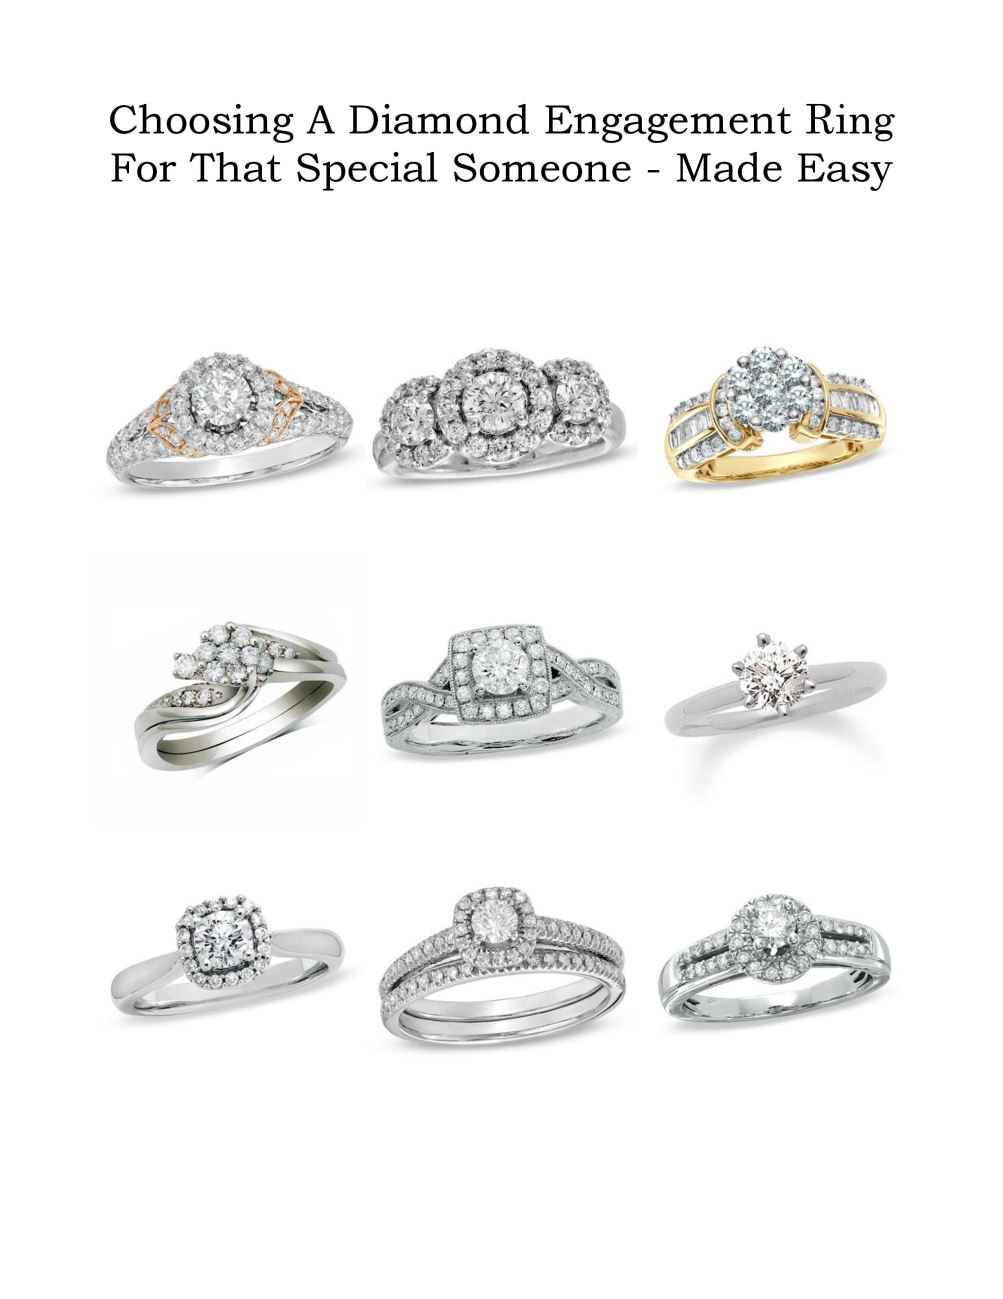 Consumer Guide (Diamond Rings)-page-001